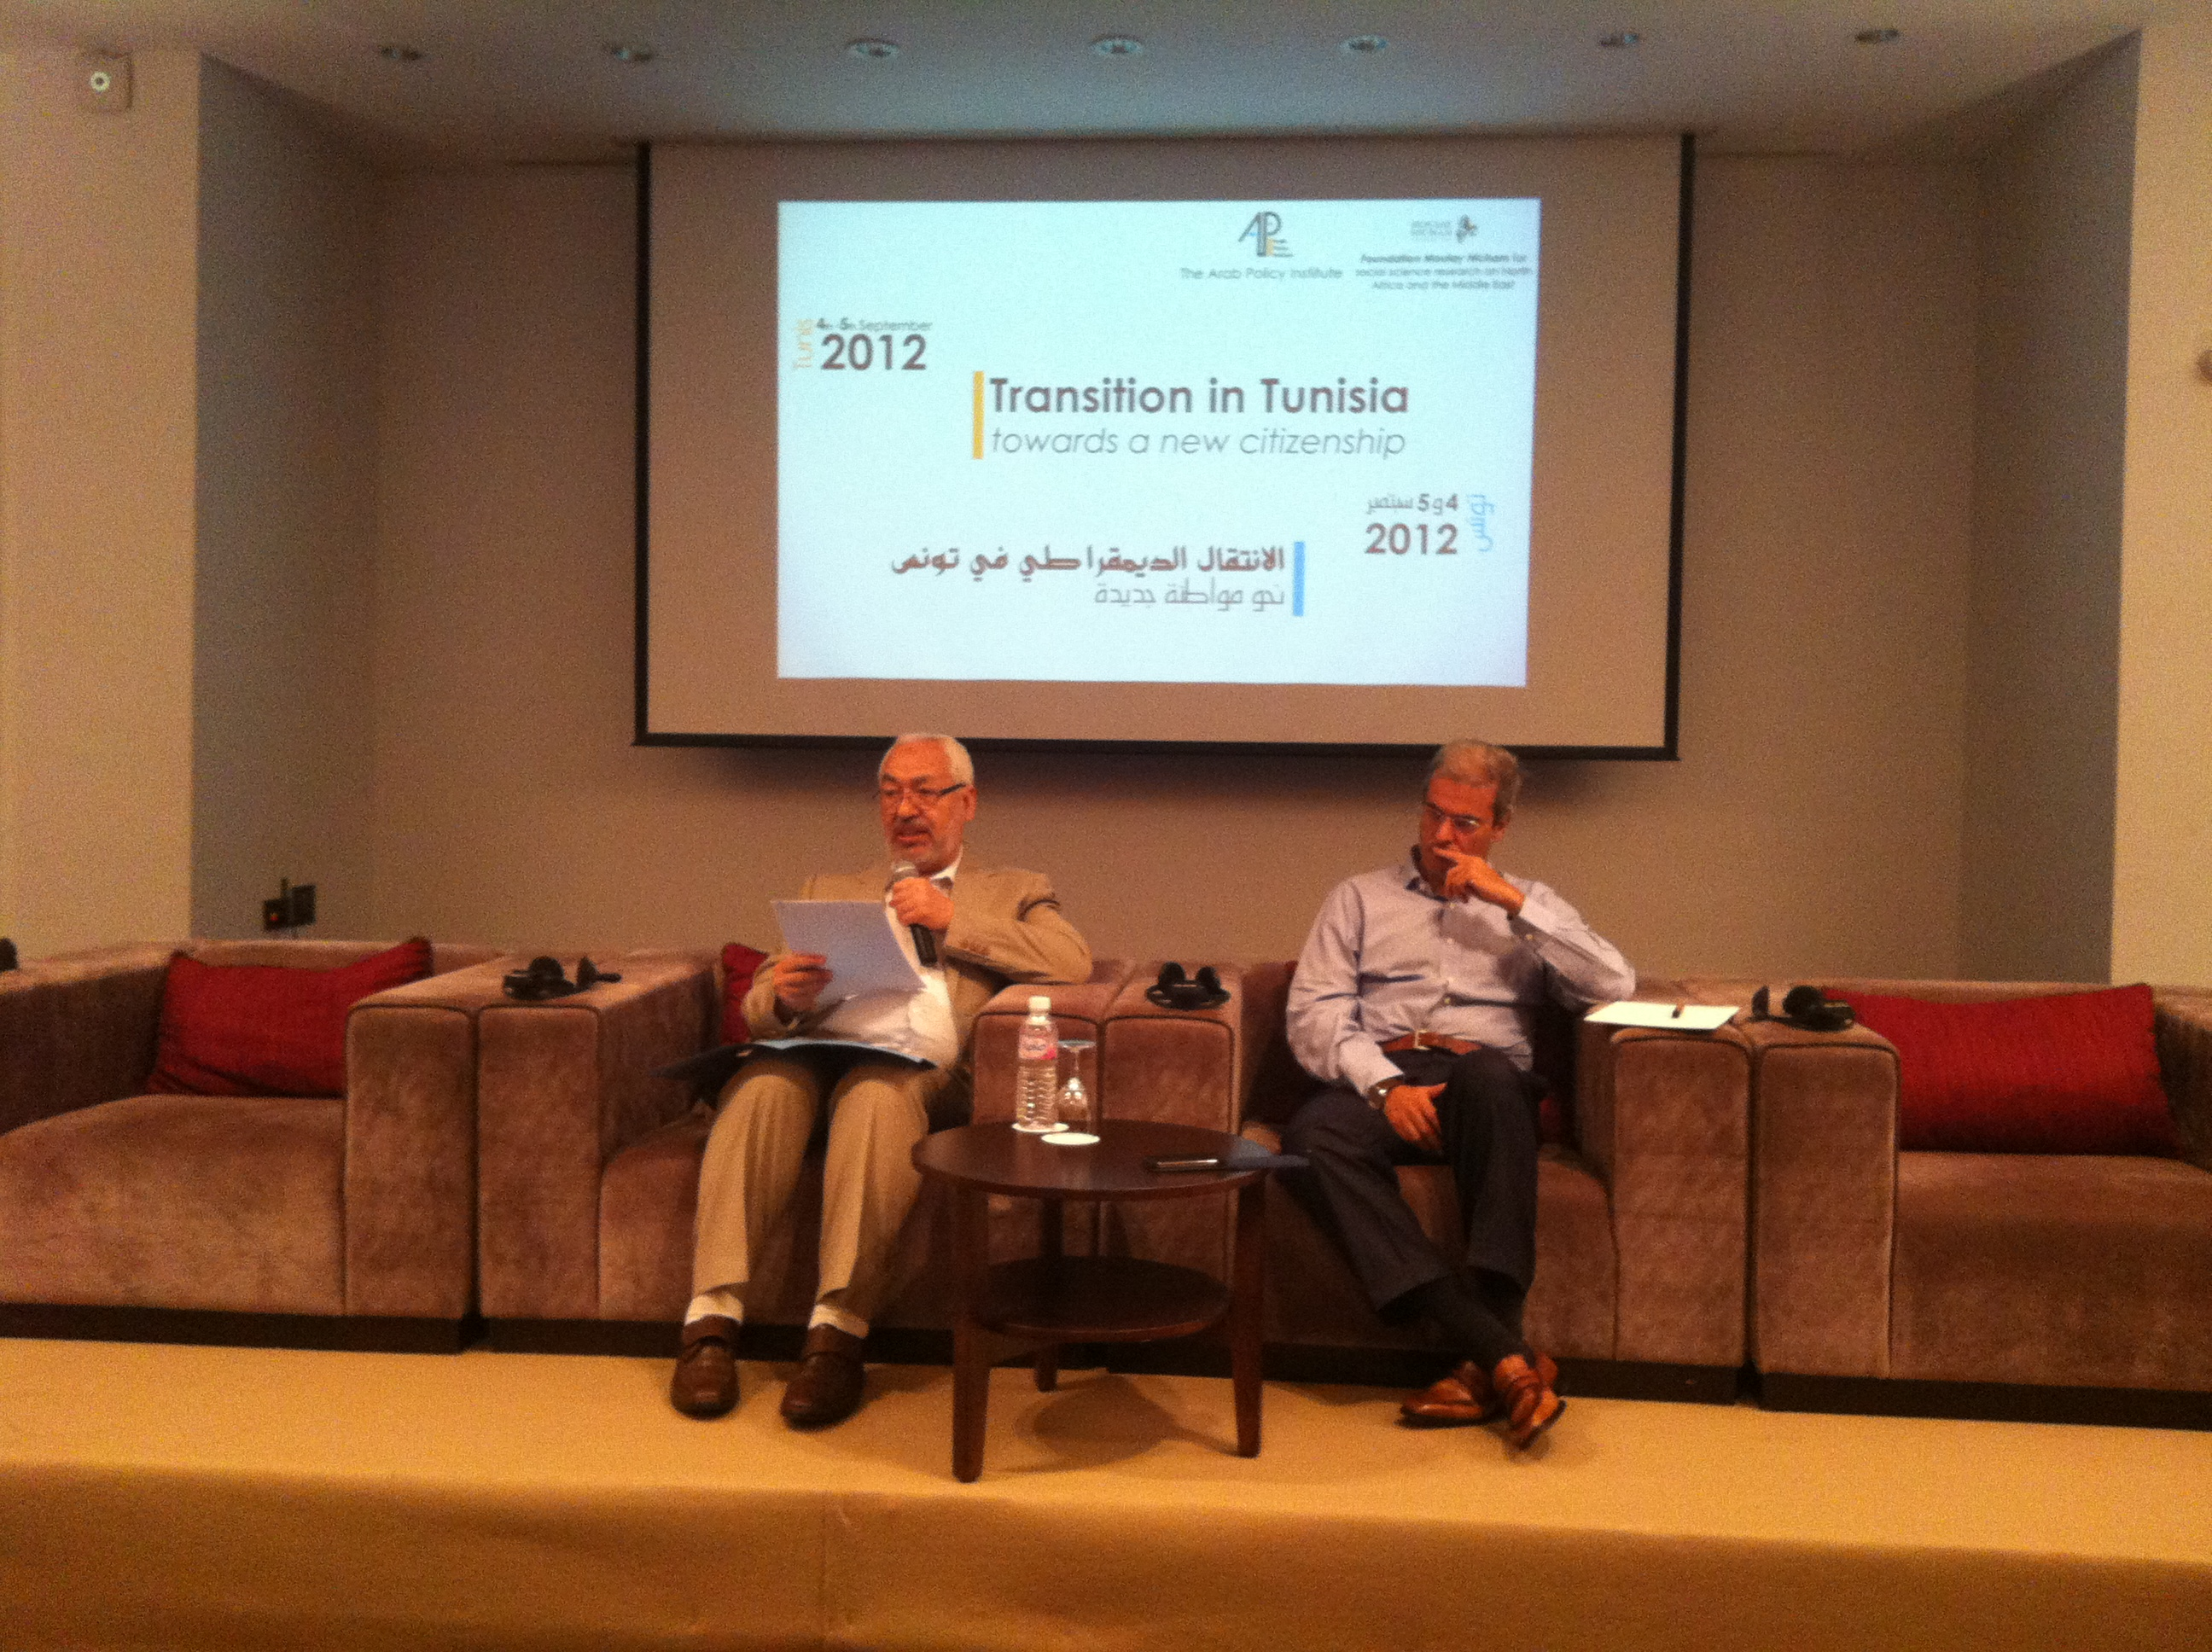 image Transition in Tunisia – Towards a New Citizenship